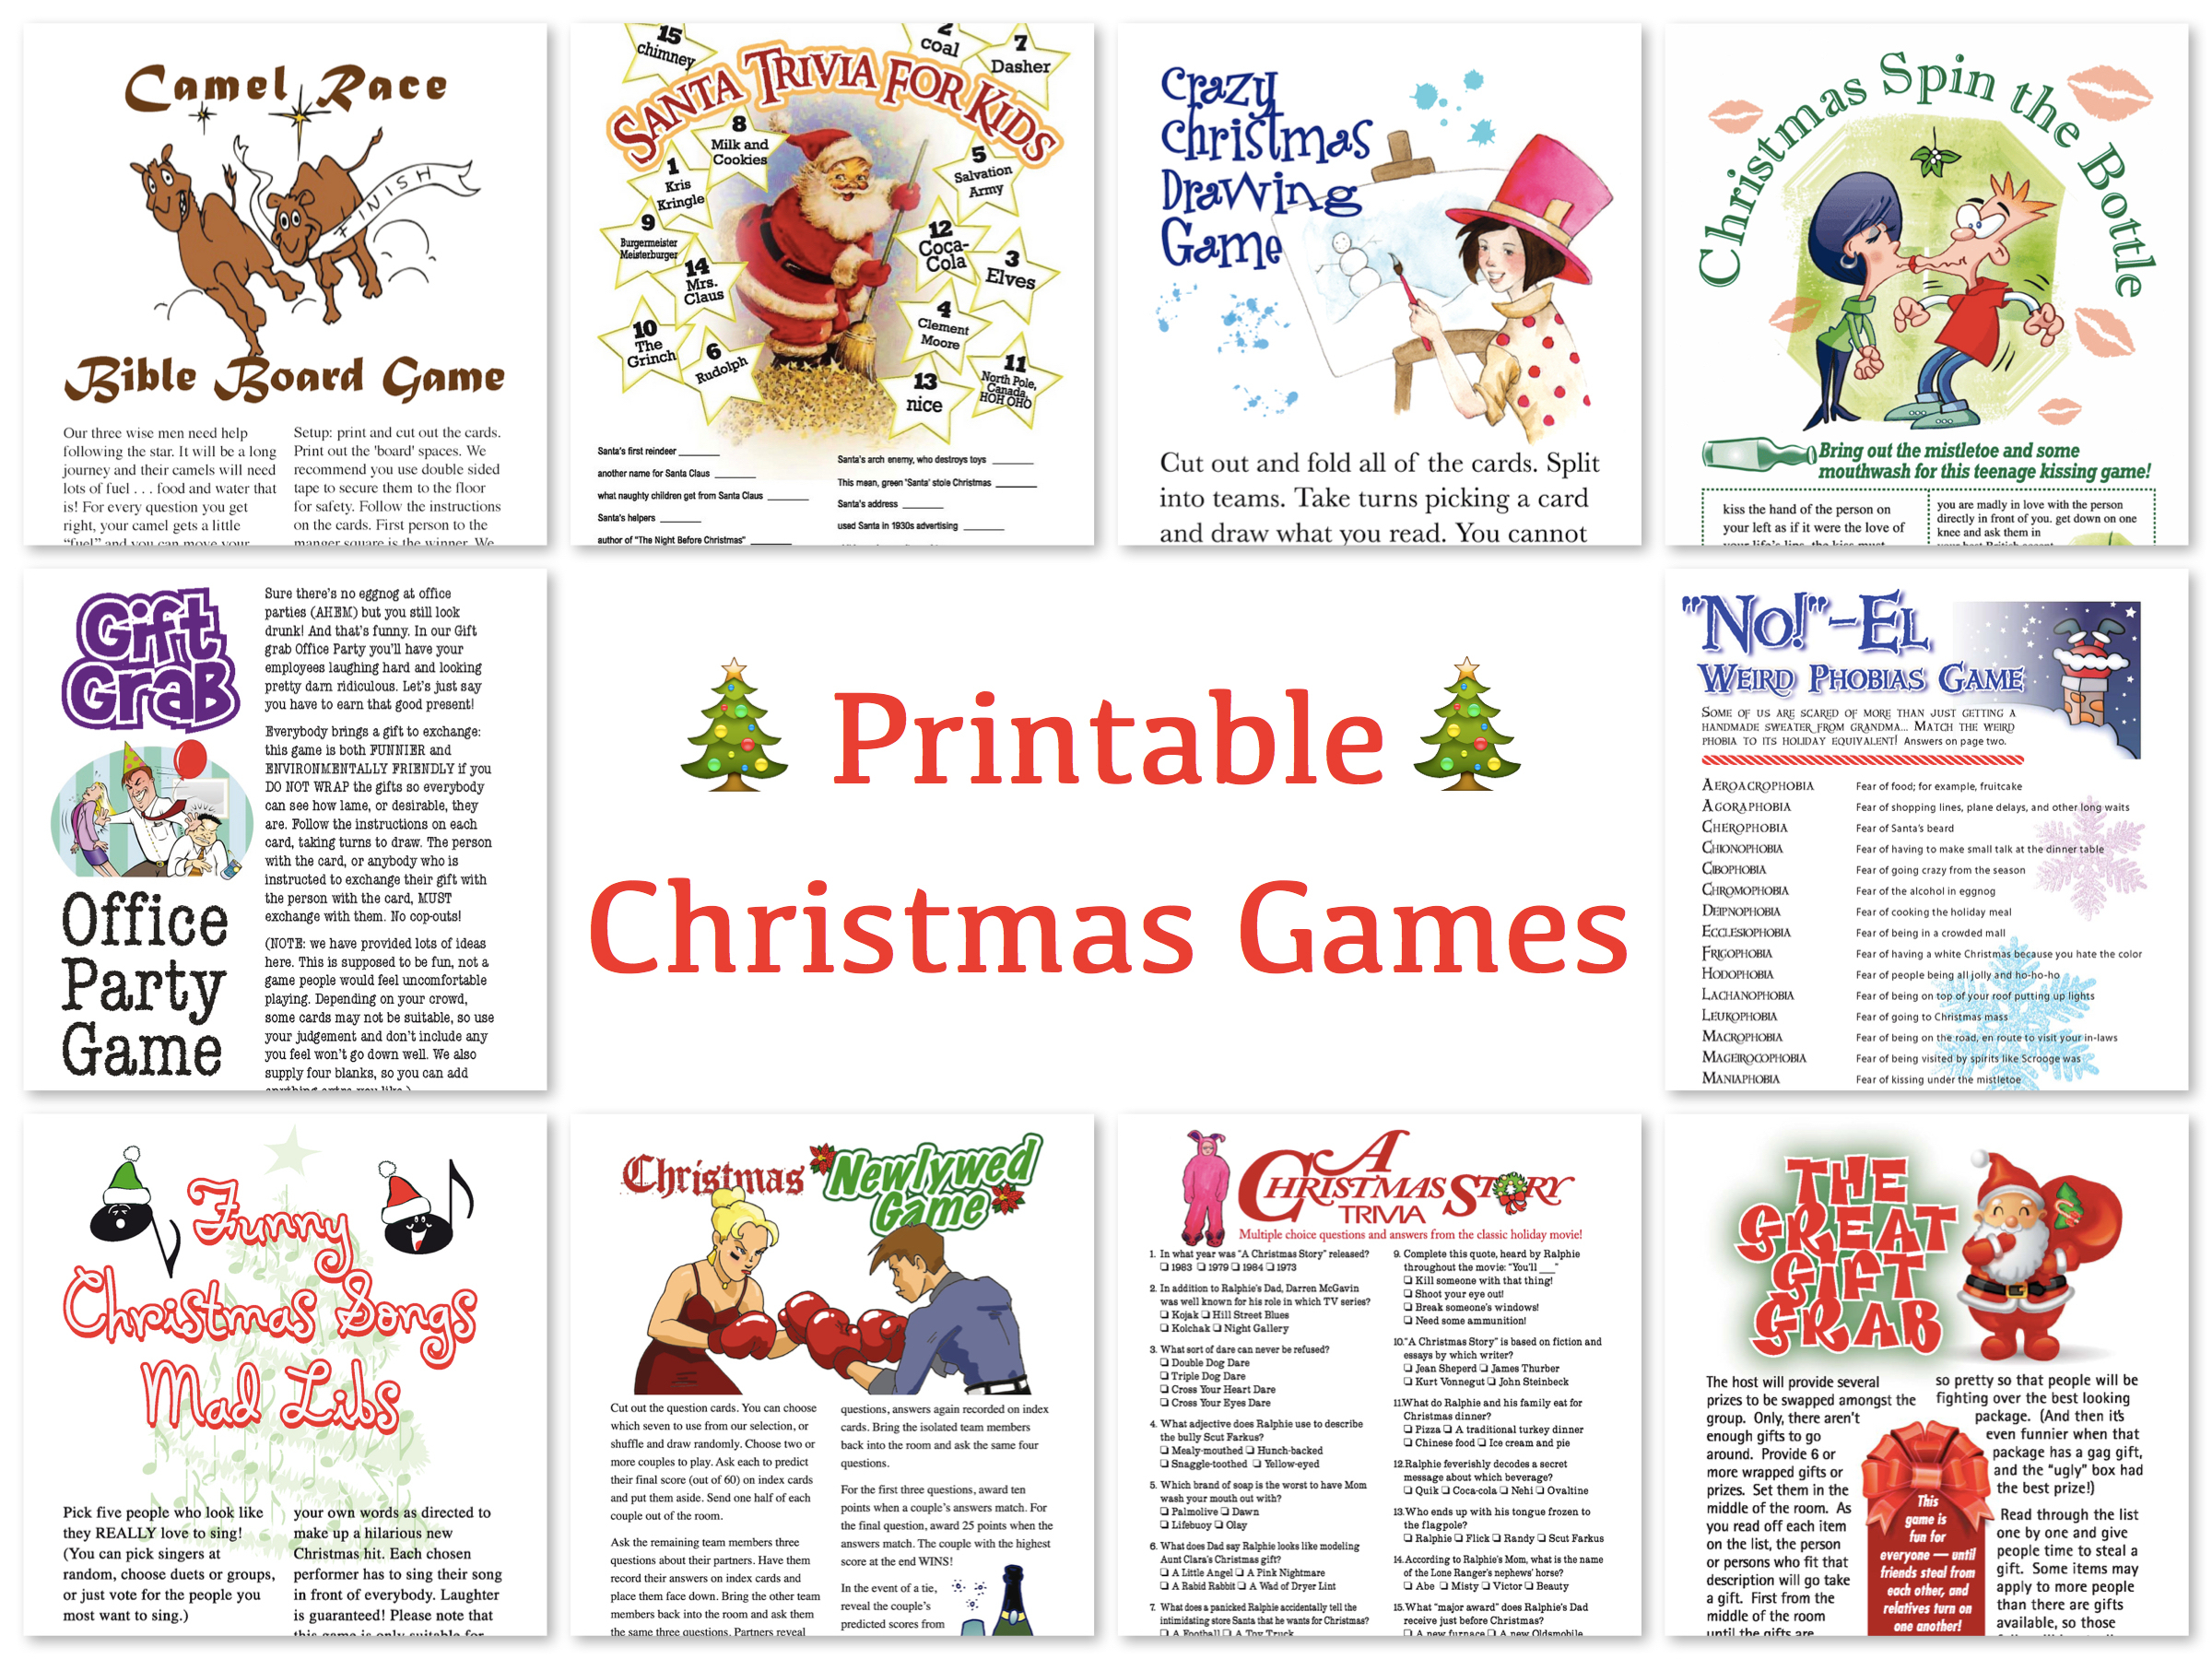 Printable Christmas Games For Family Gatherings – Festival Collections - Free Printable Christmas Games For Family Gatherings